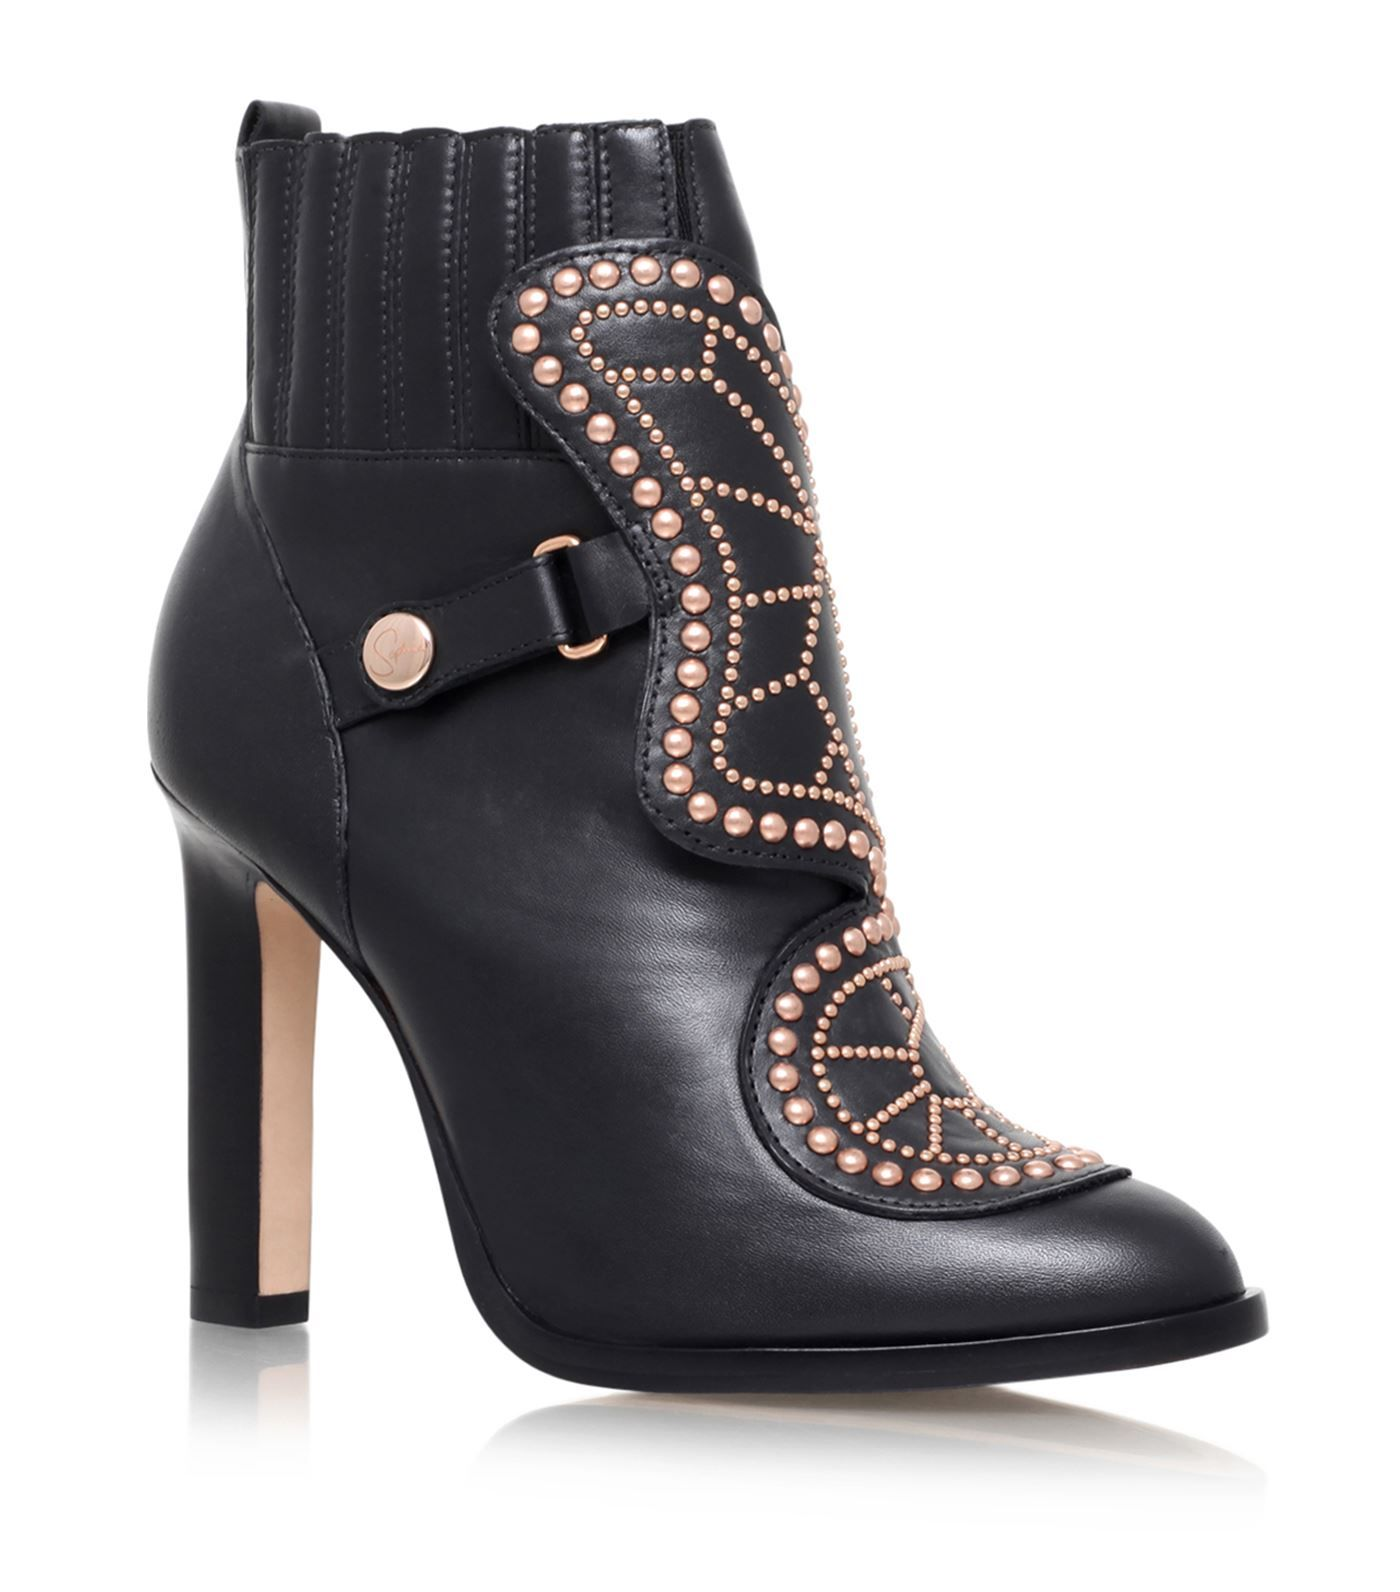 39dcc3385989 Sophia Webster Karina Butterfly Ankle Boots 100